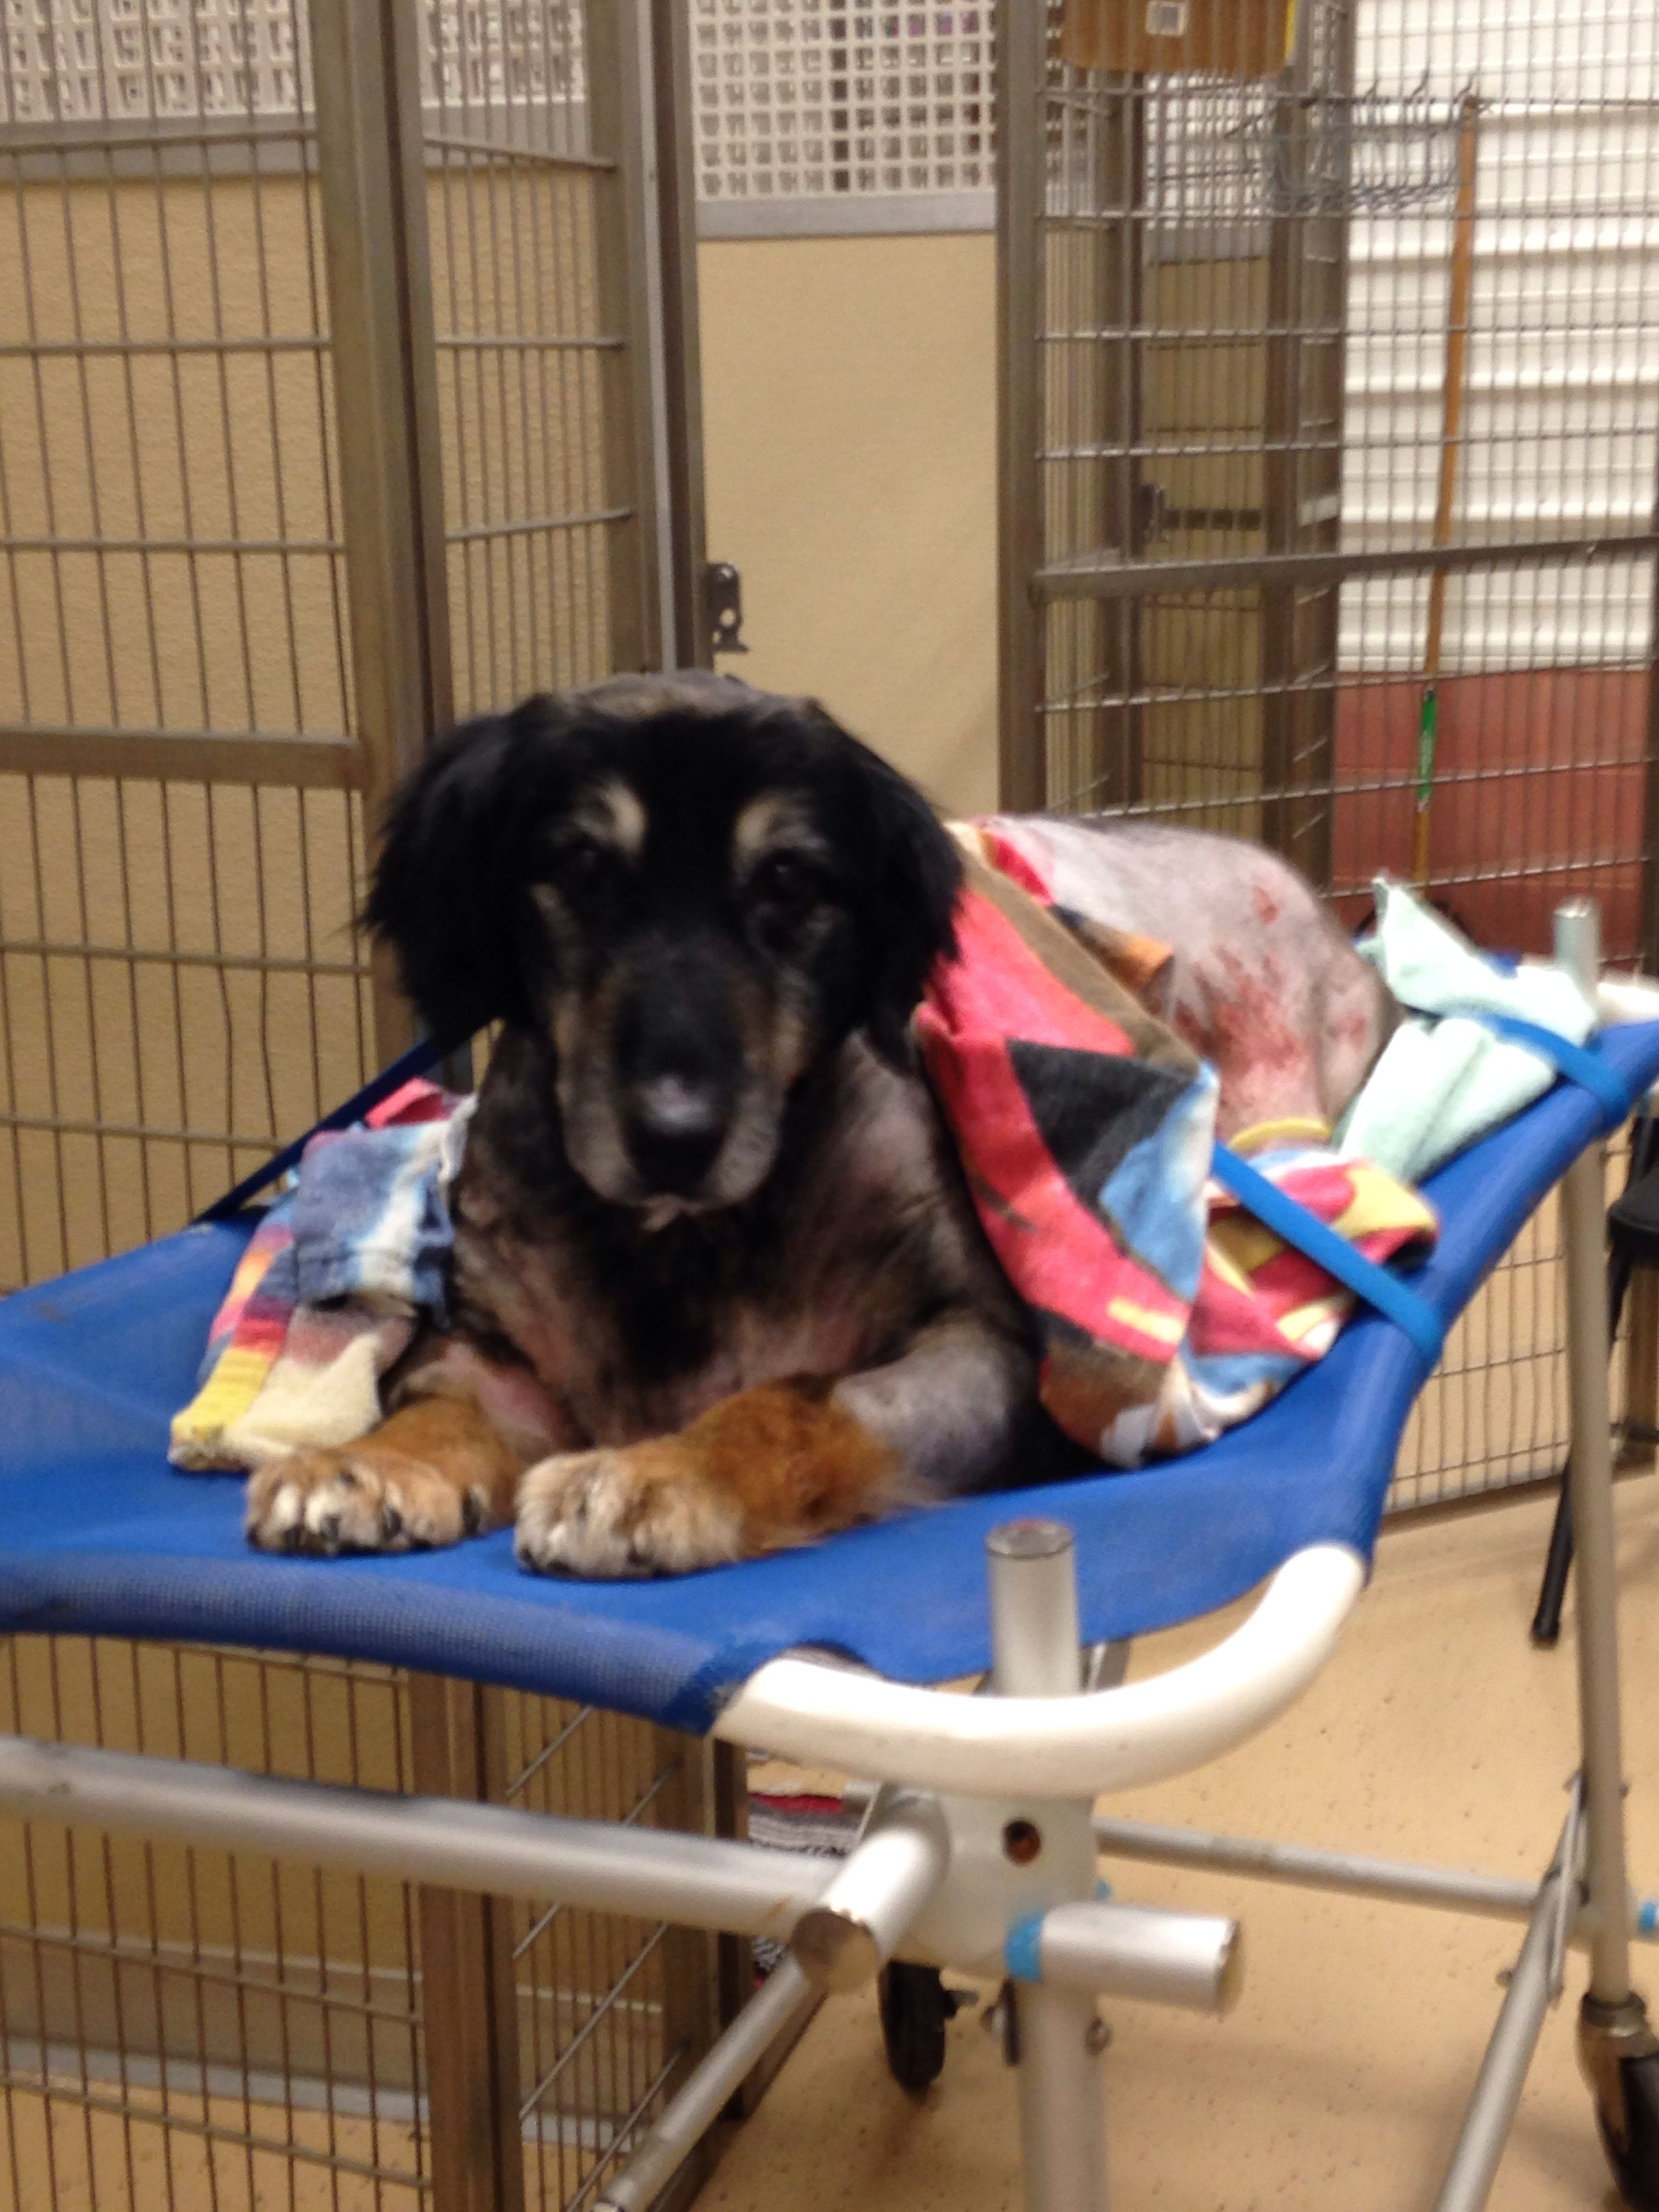 Bobaby after his surgery, he was not allowed to walk for a